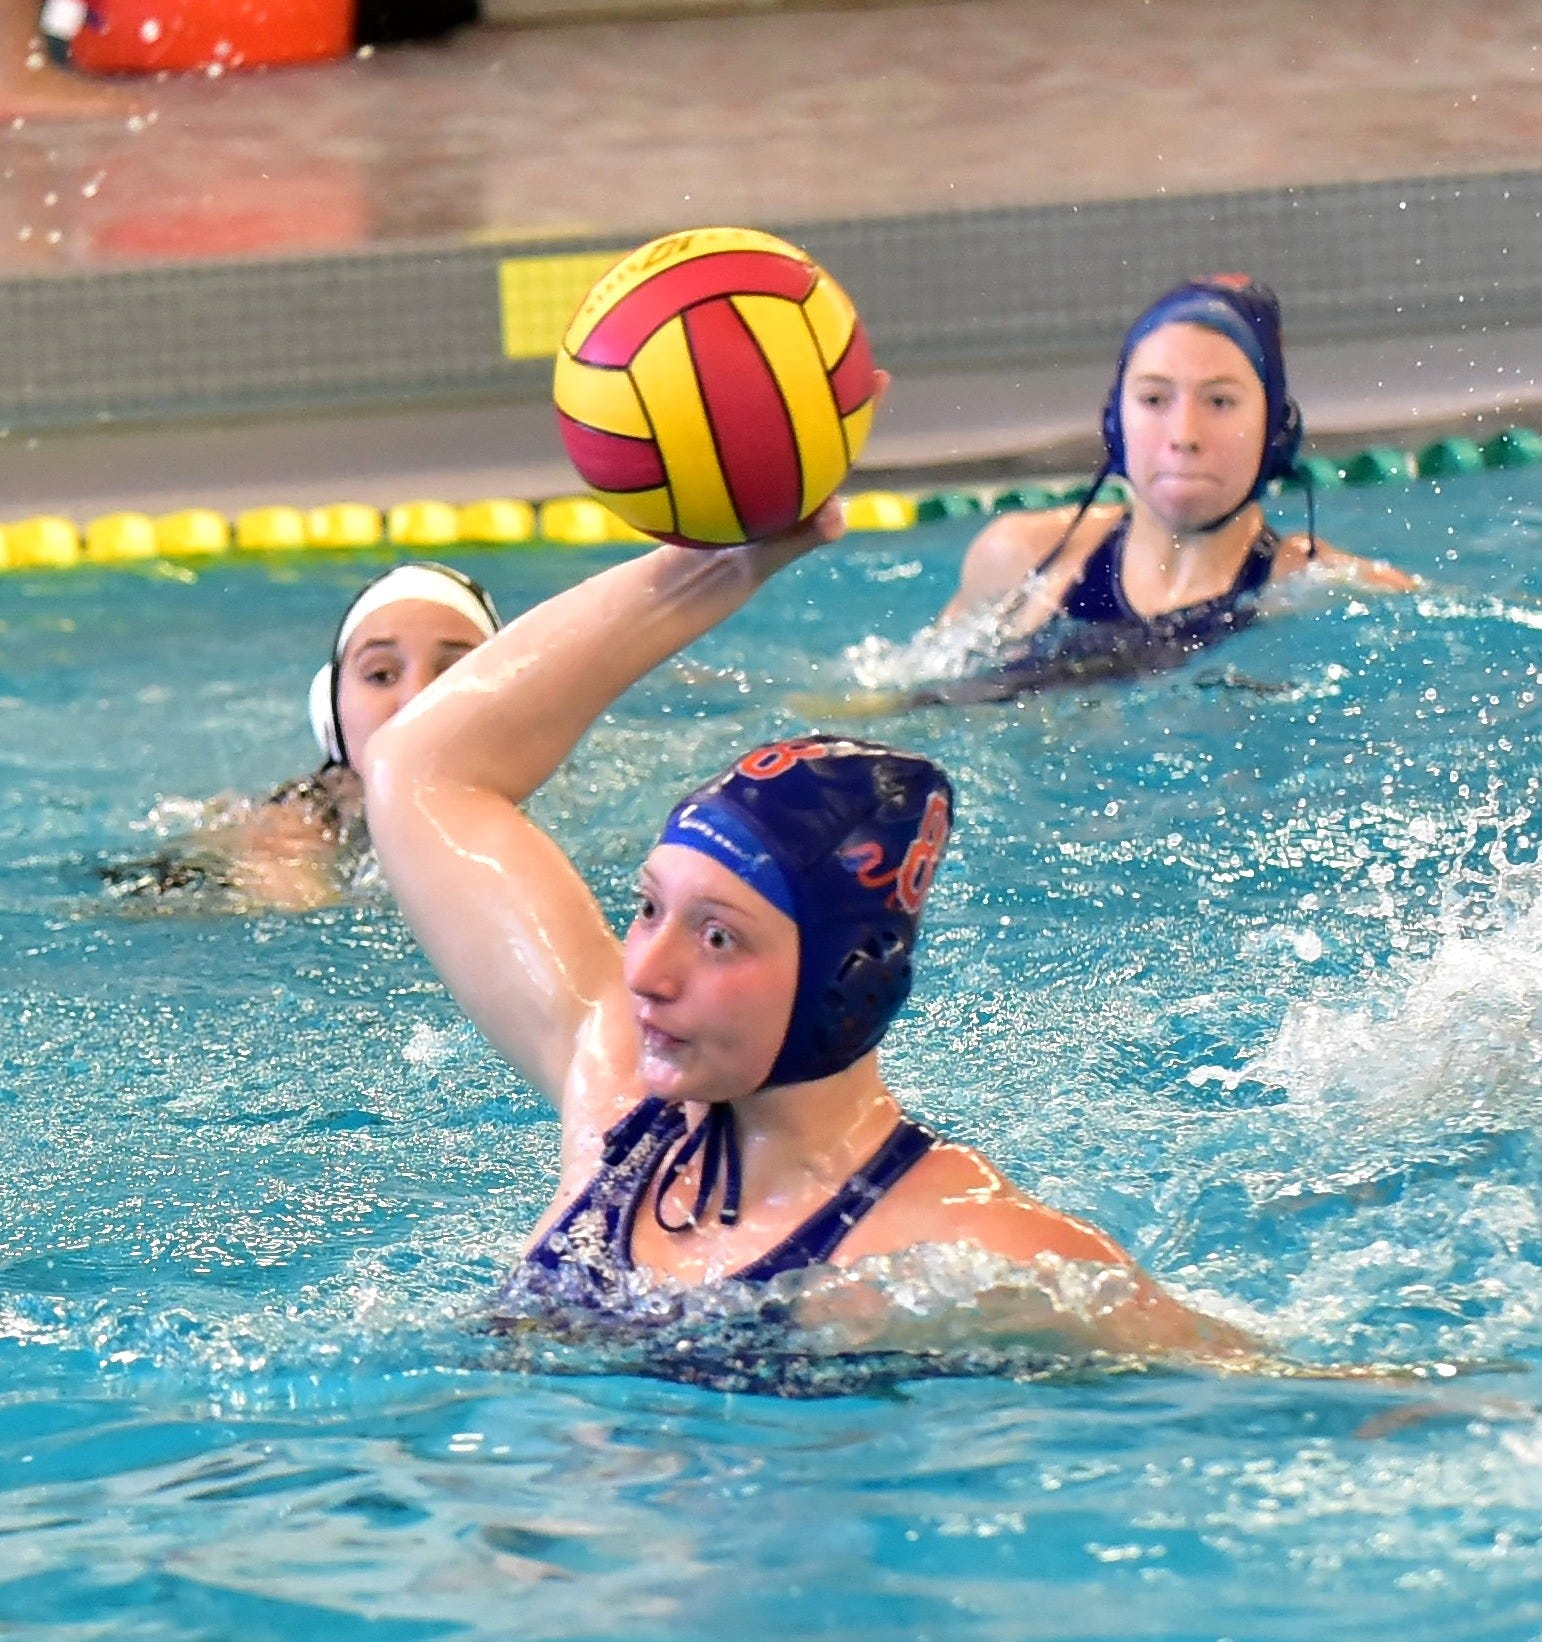 PHOTOS: Ohio high school girls state water polo tournament final day, Oct. 19